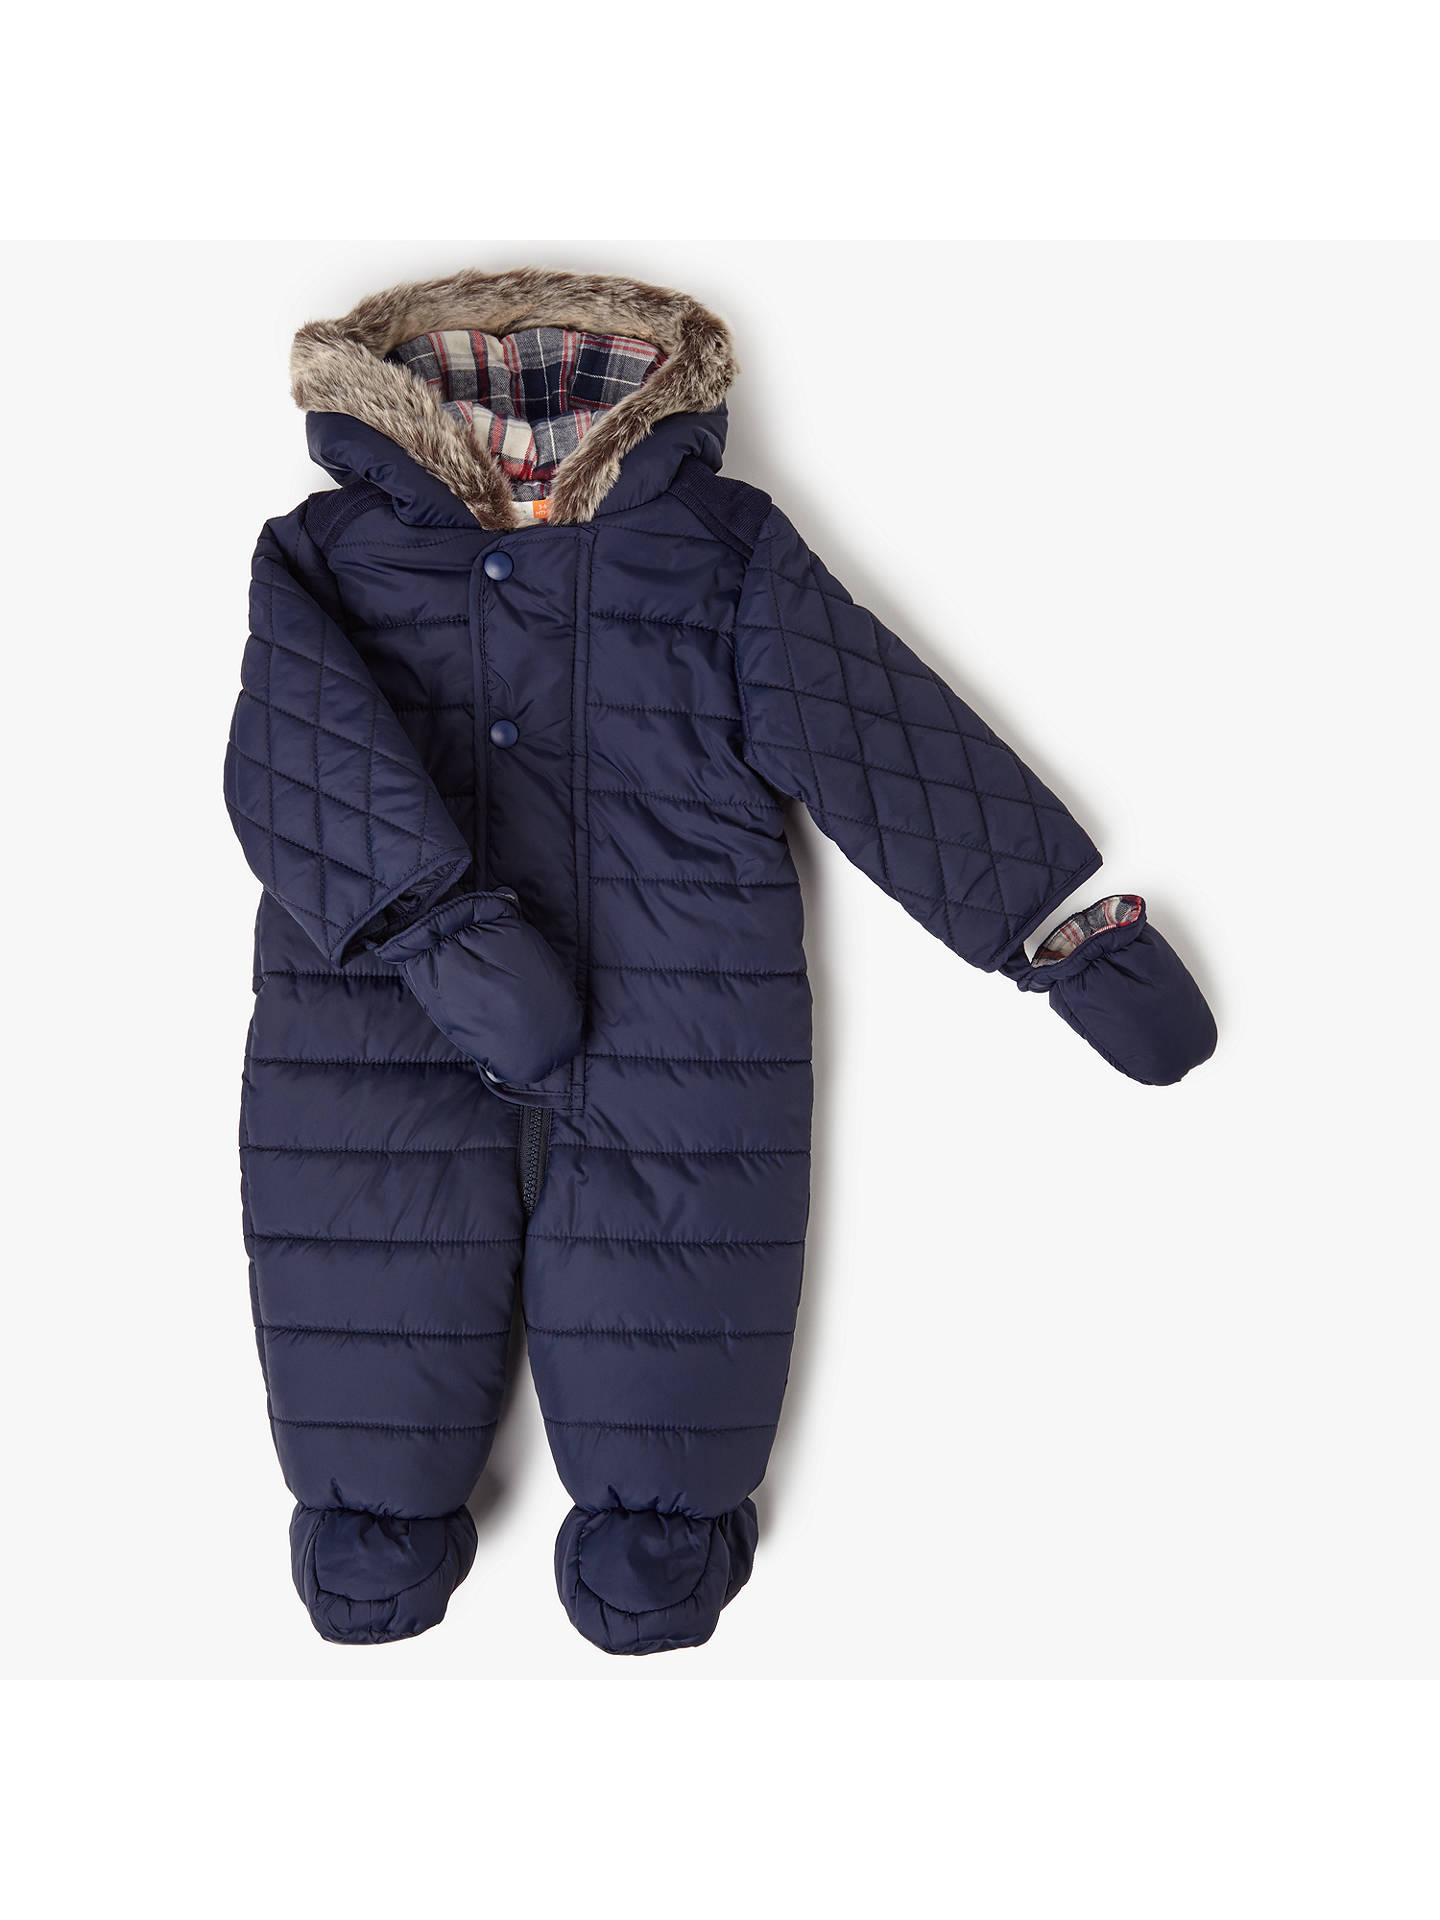 db98233fc John Lewis Baby Quilted Snowsuit